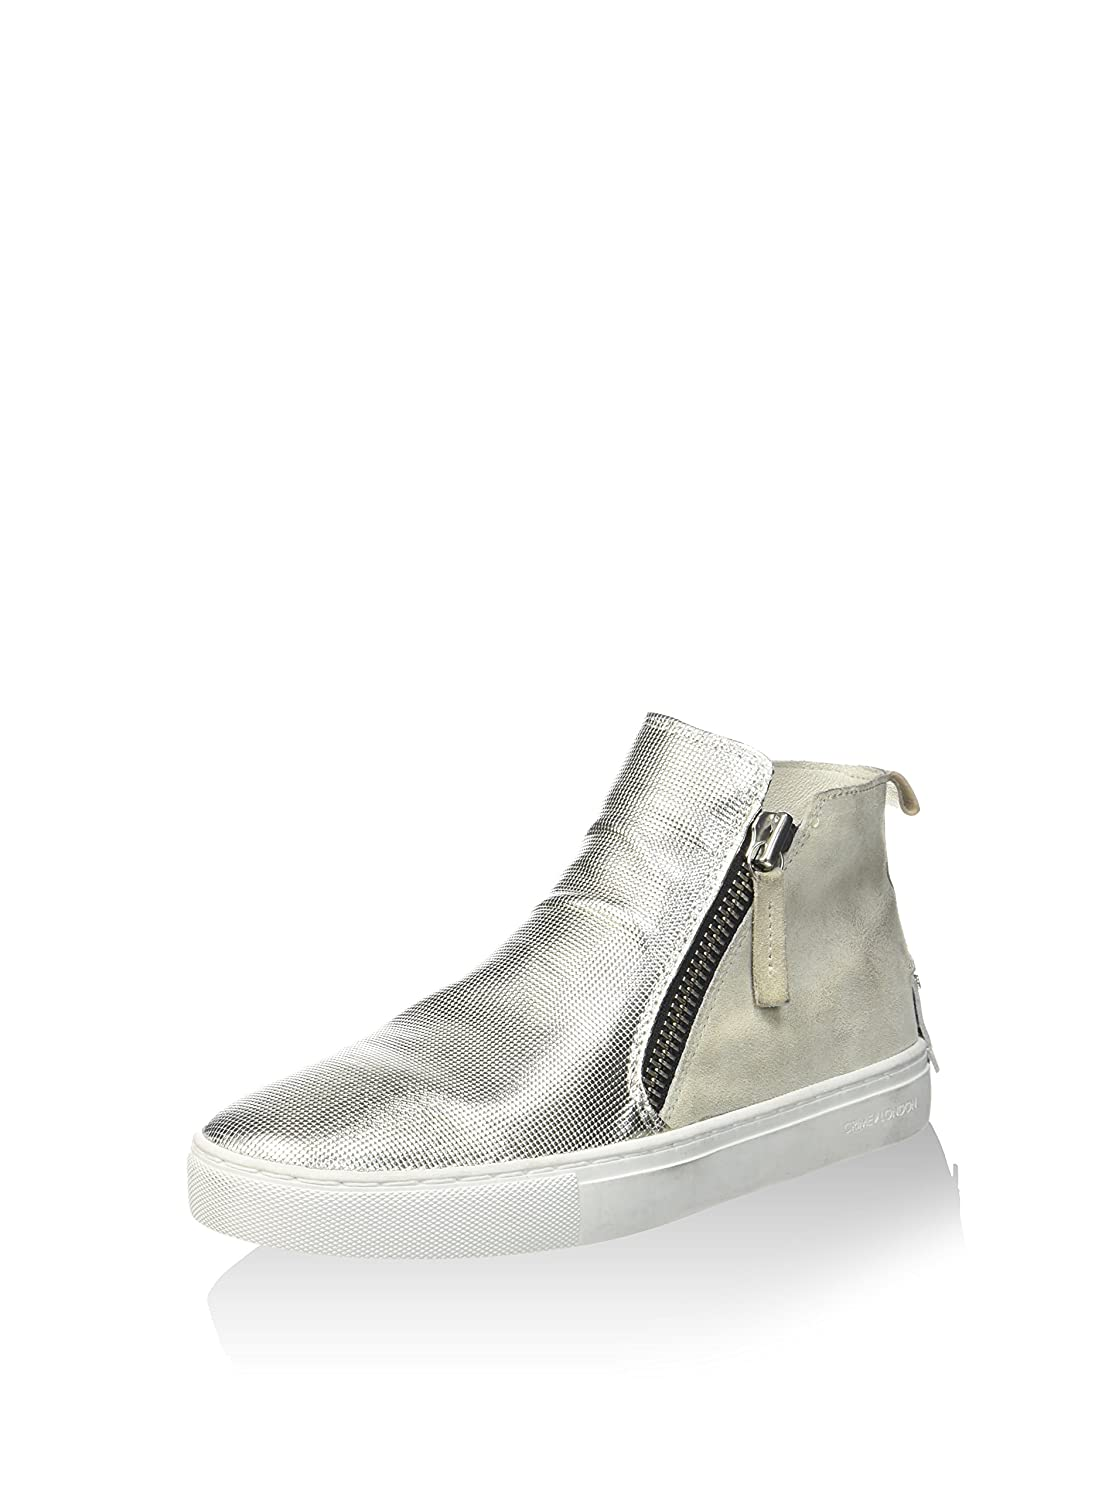 CRIME London Damen Hightop Turnschuhe Beige 36 EU